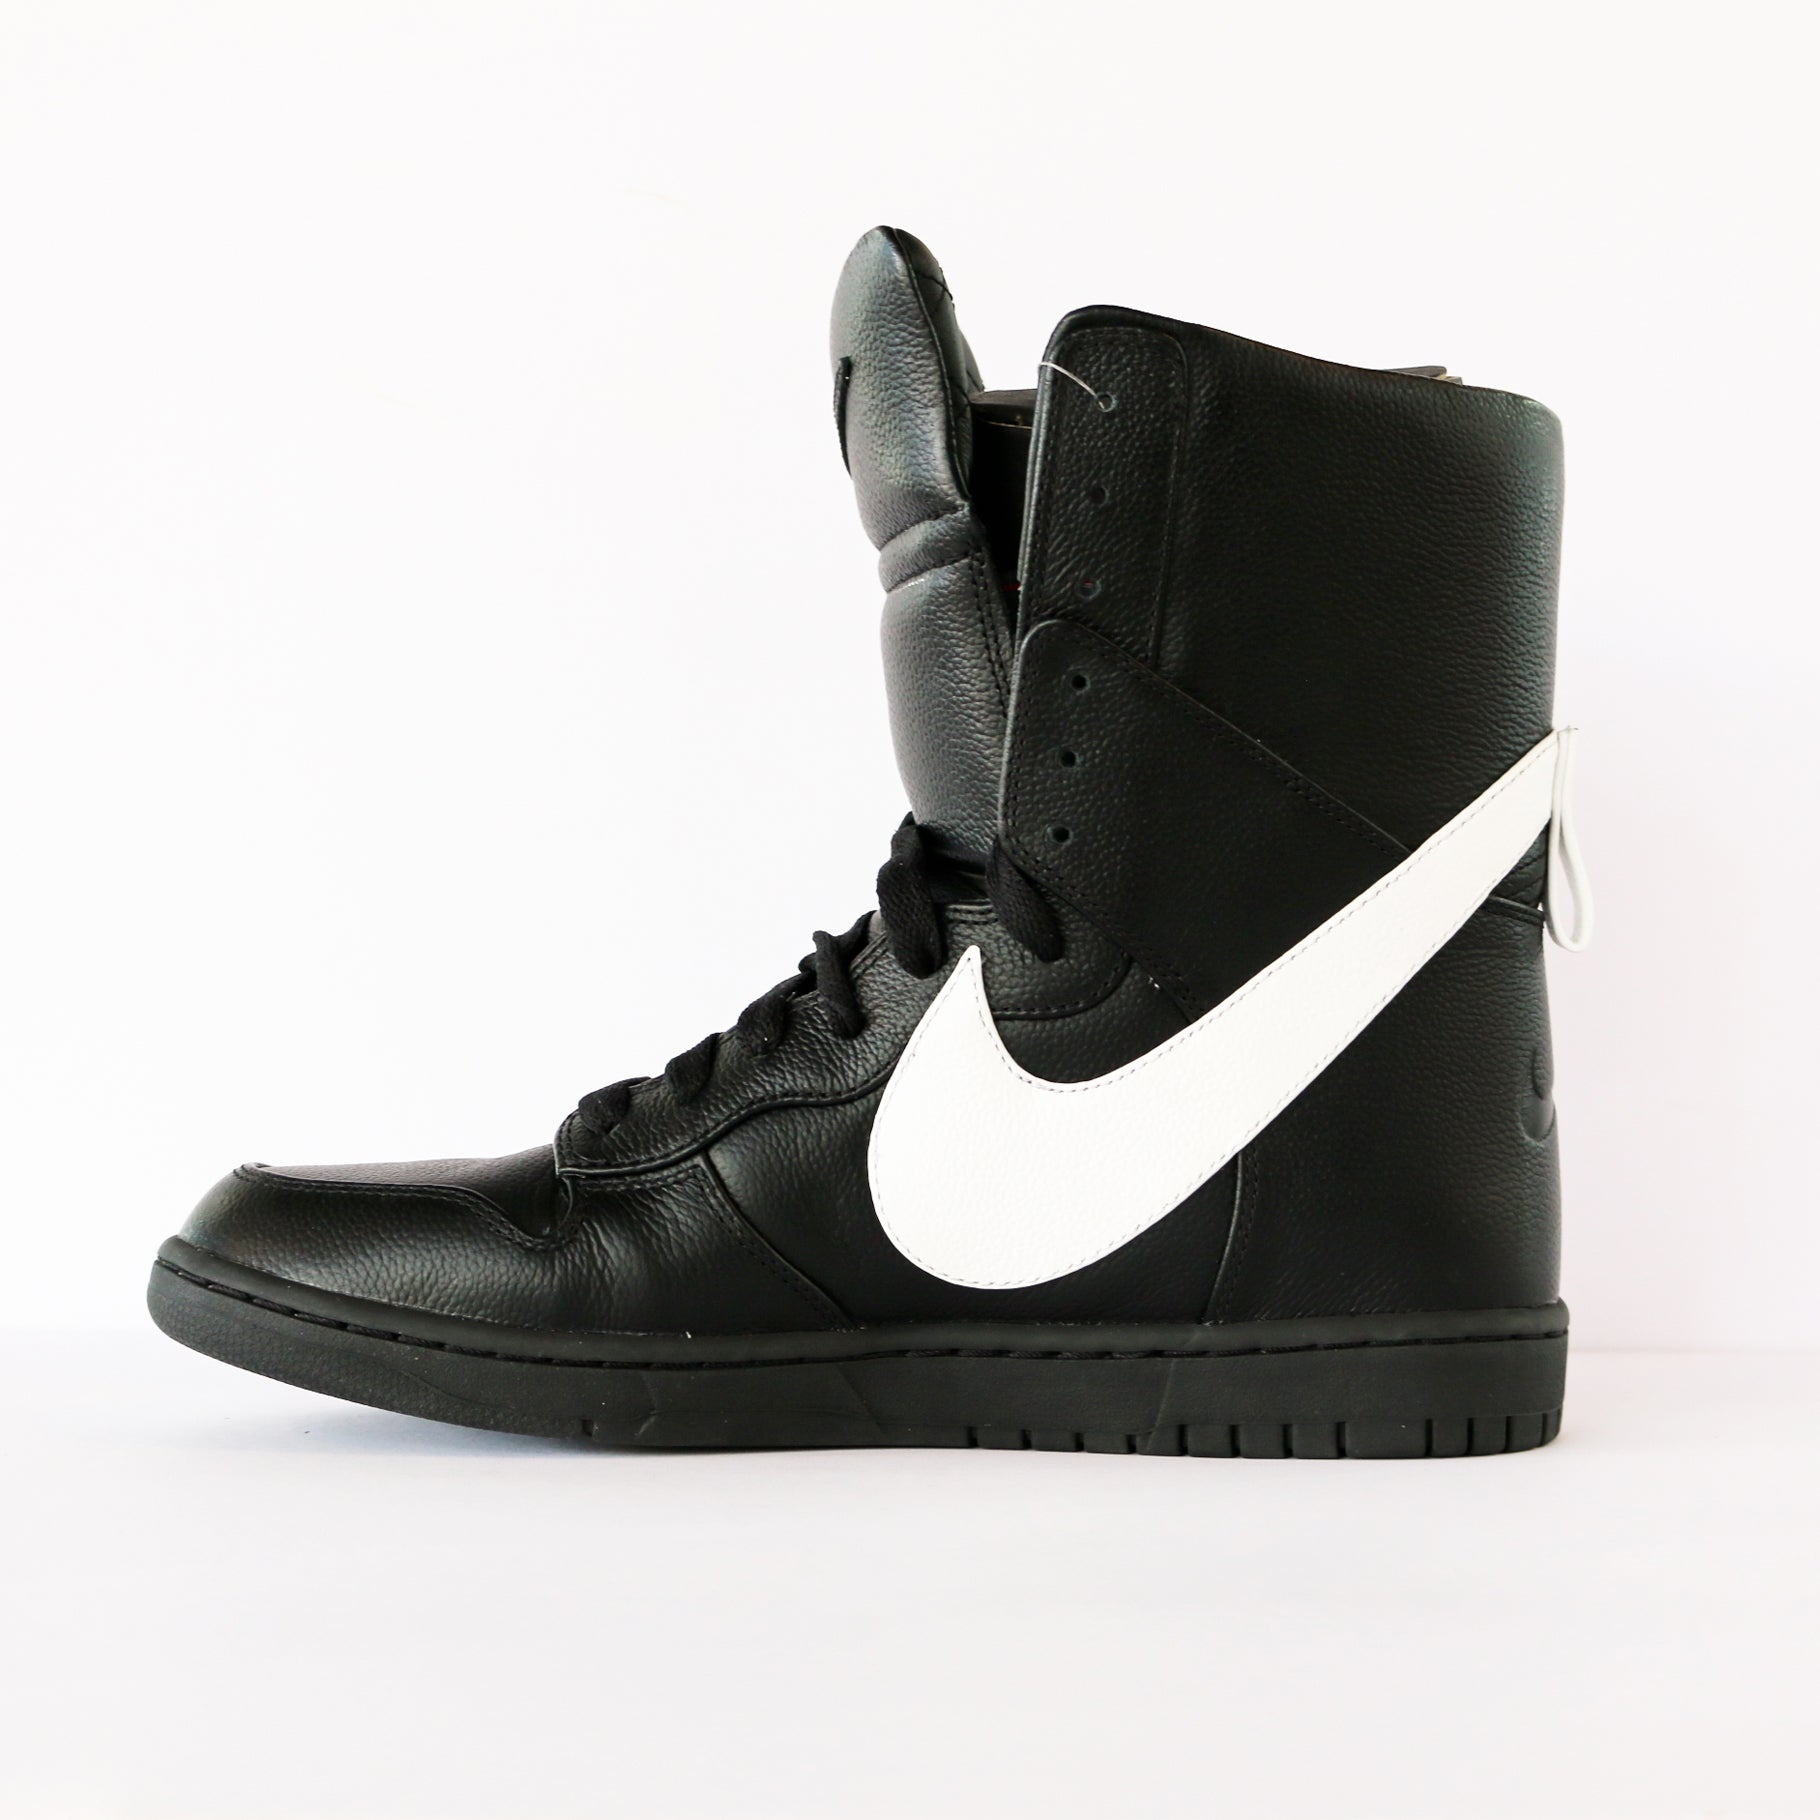 buy popular 0353e 74823 Riccardo Tisci x Nike Dunk High Lux